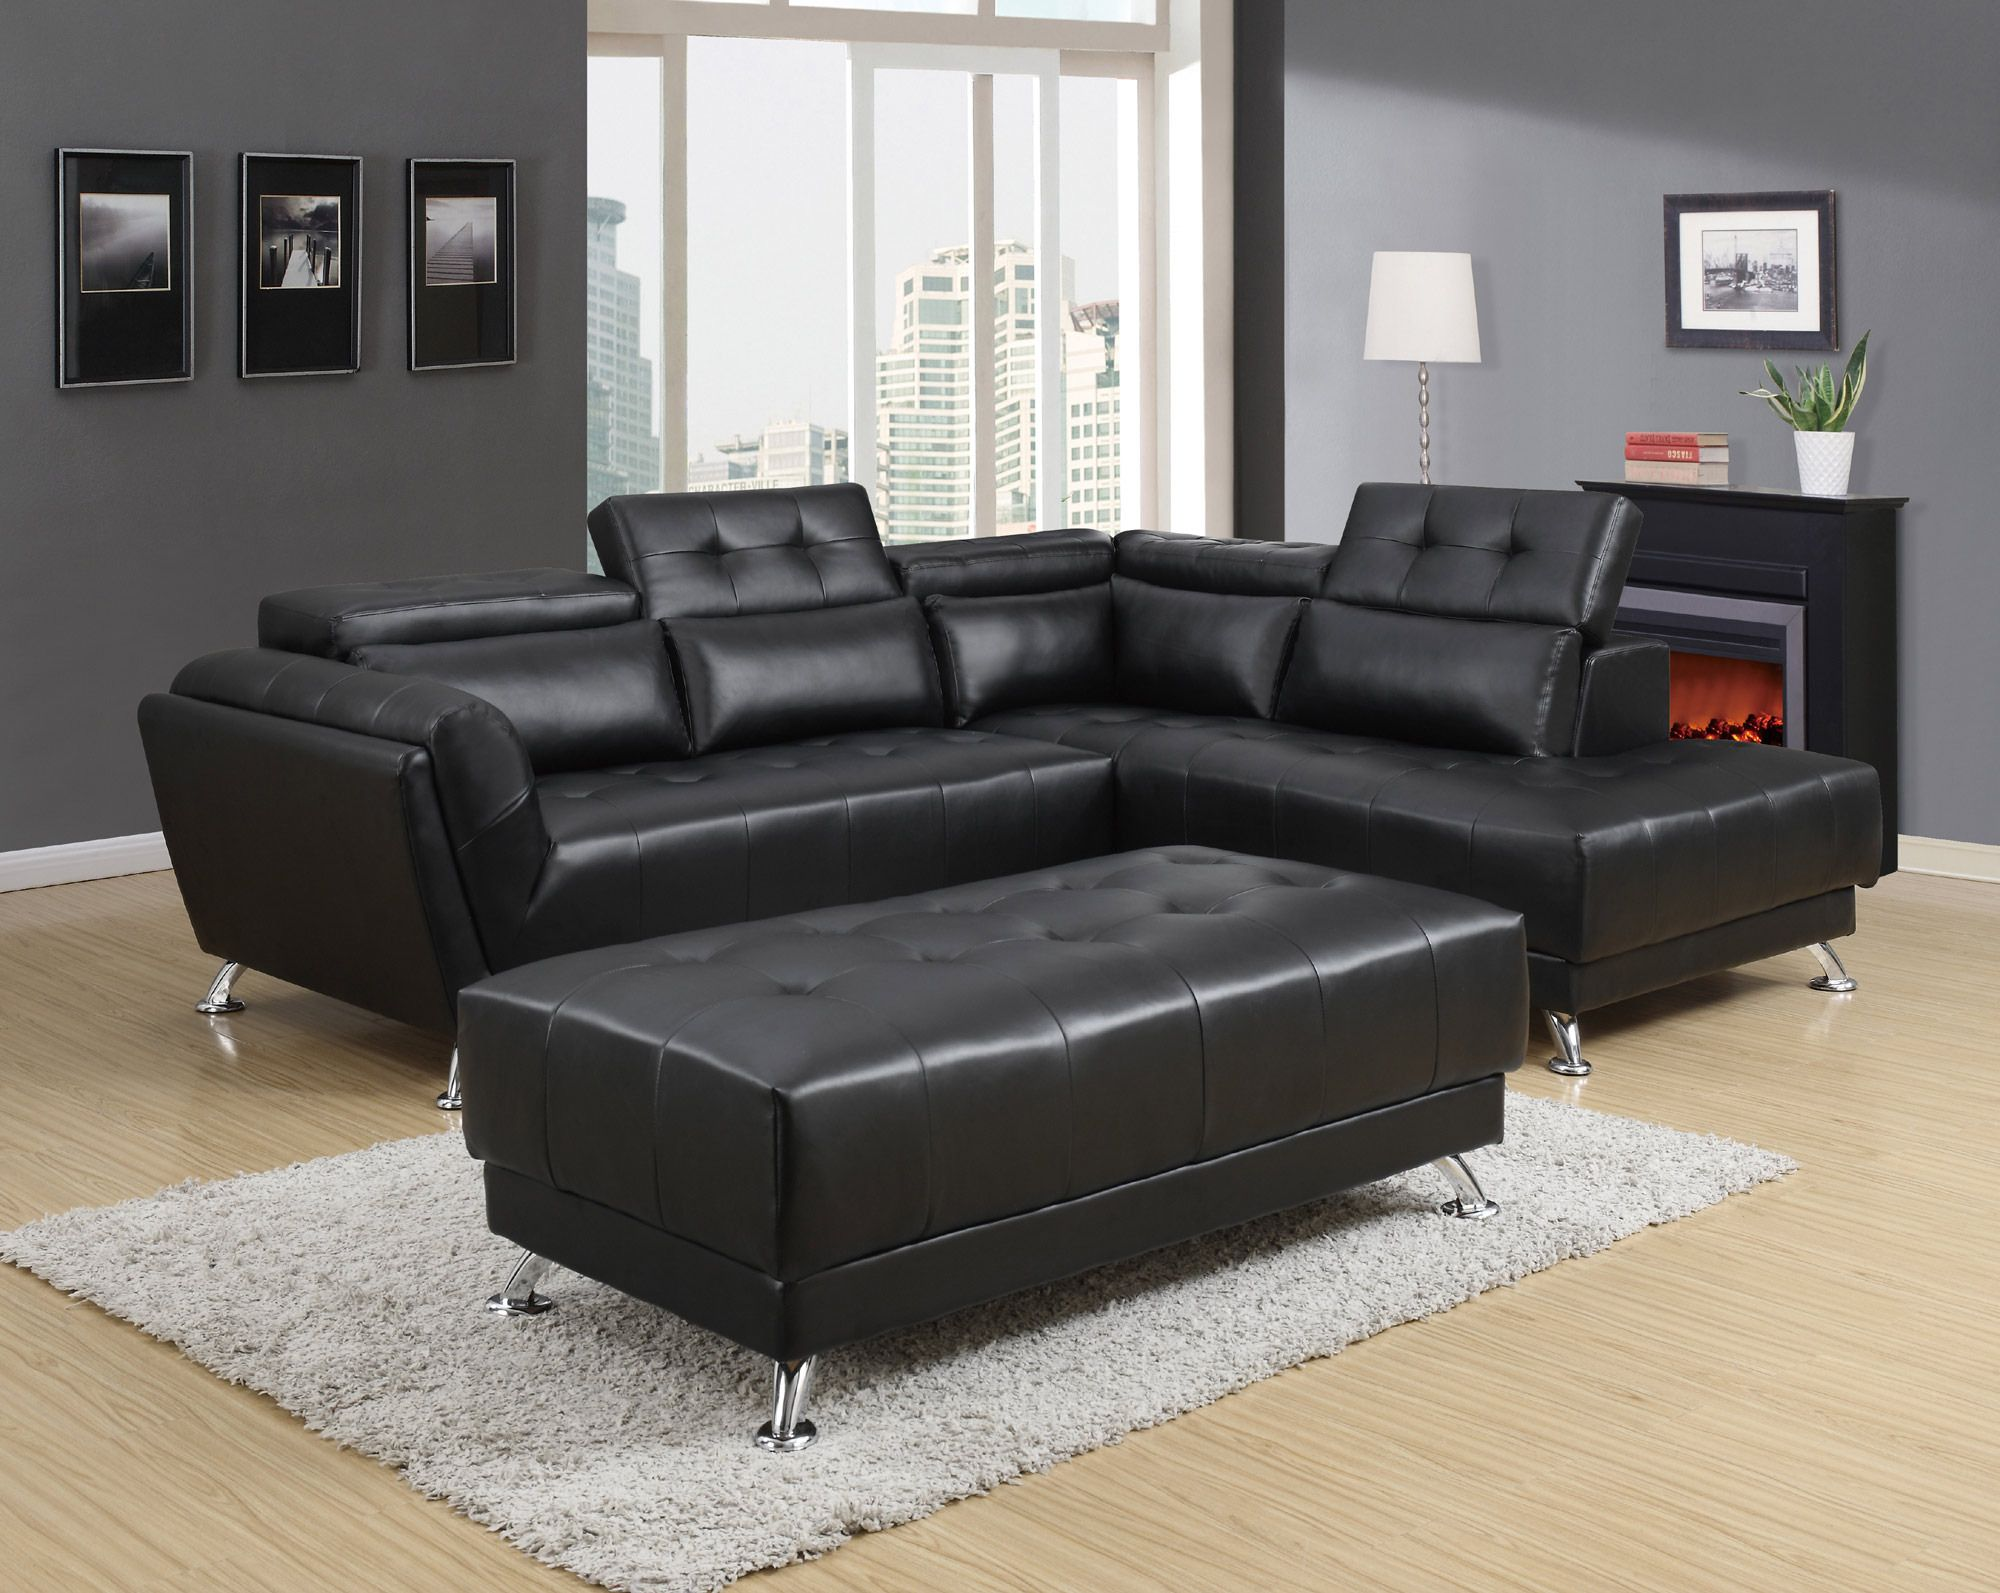 Sectional in Black Global Furniture